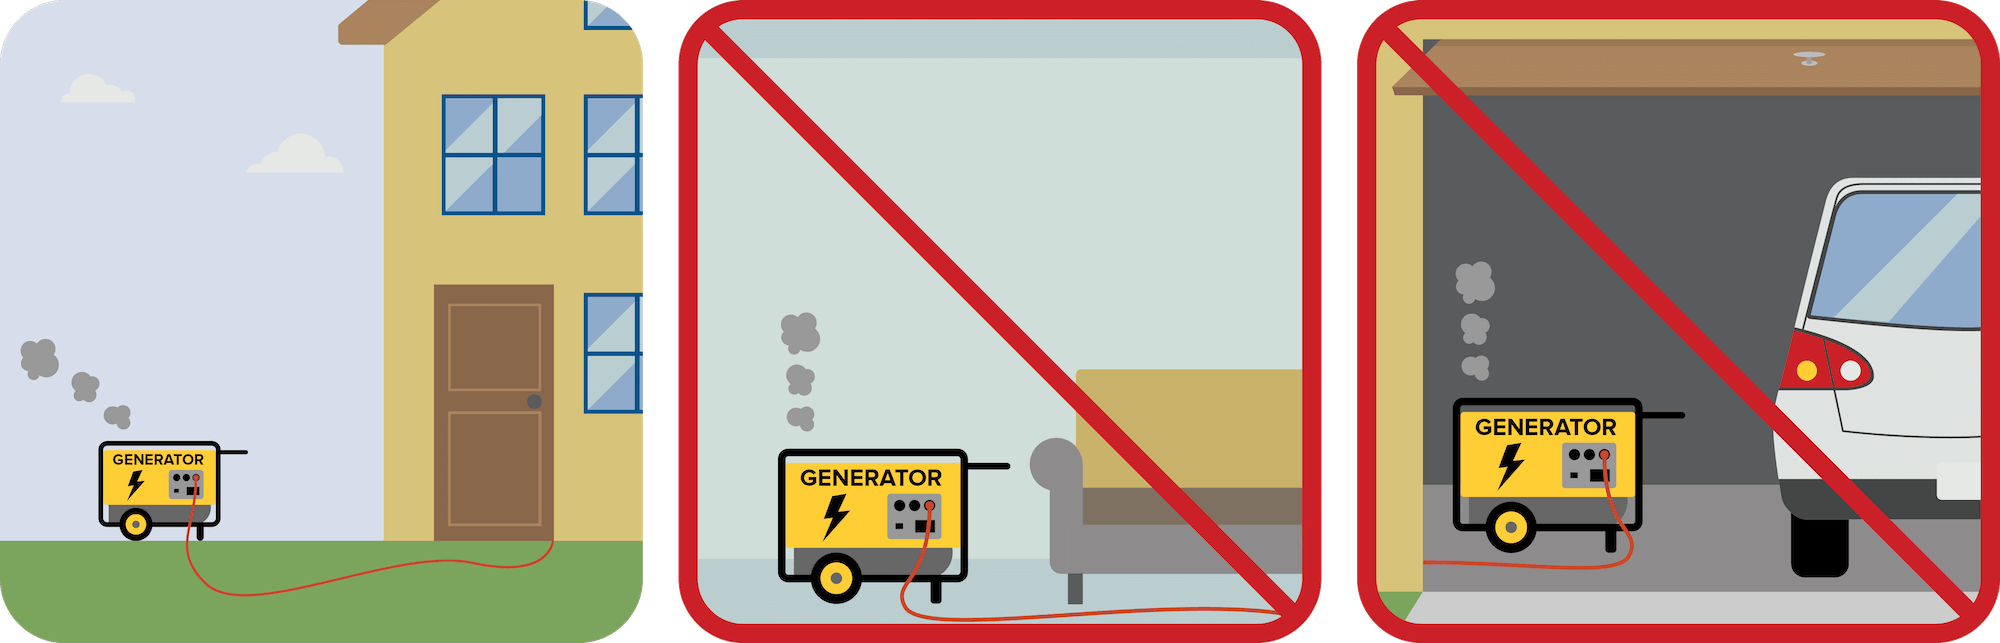 Generator placed outside the house, pictograph example of do not use indoors.